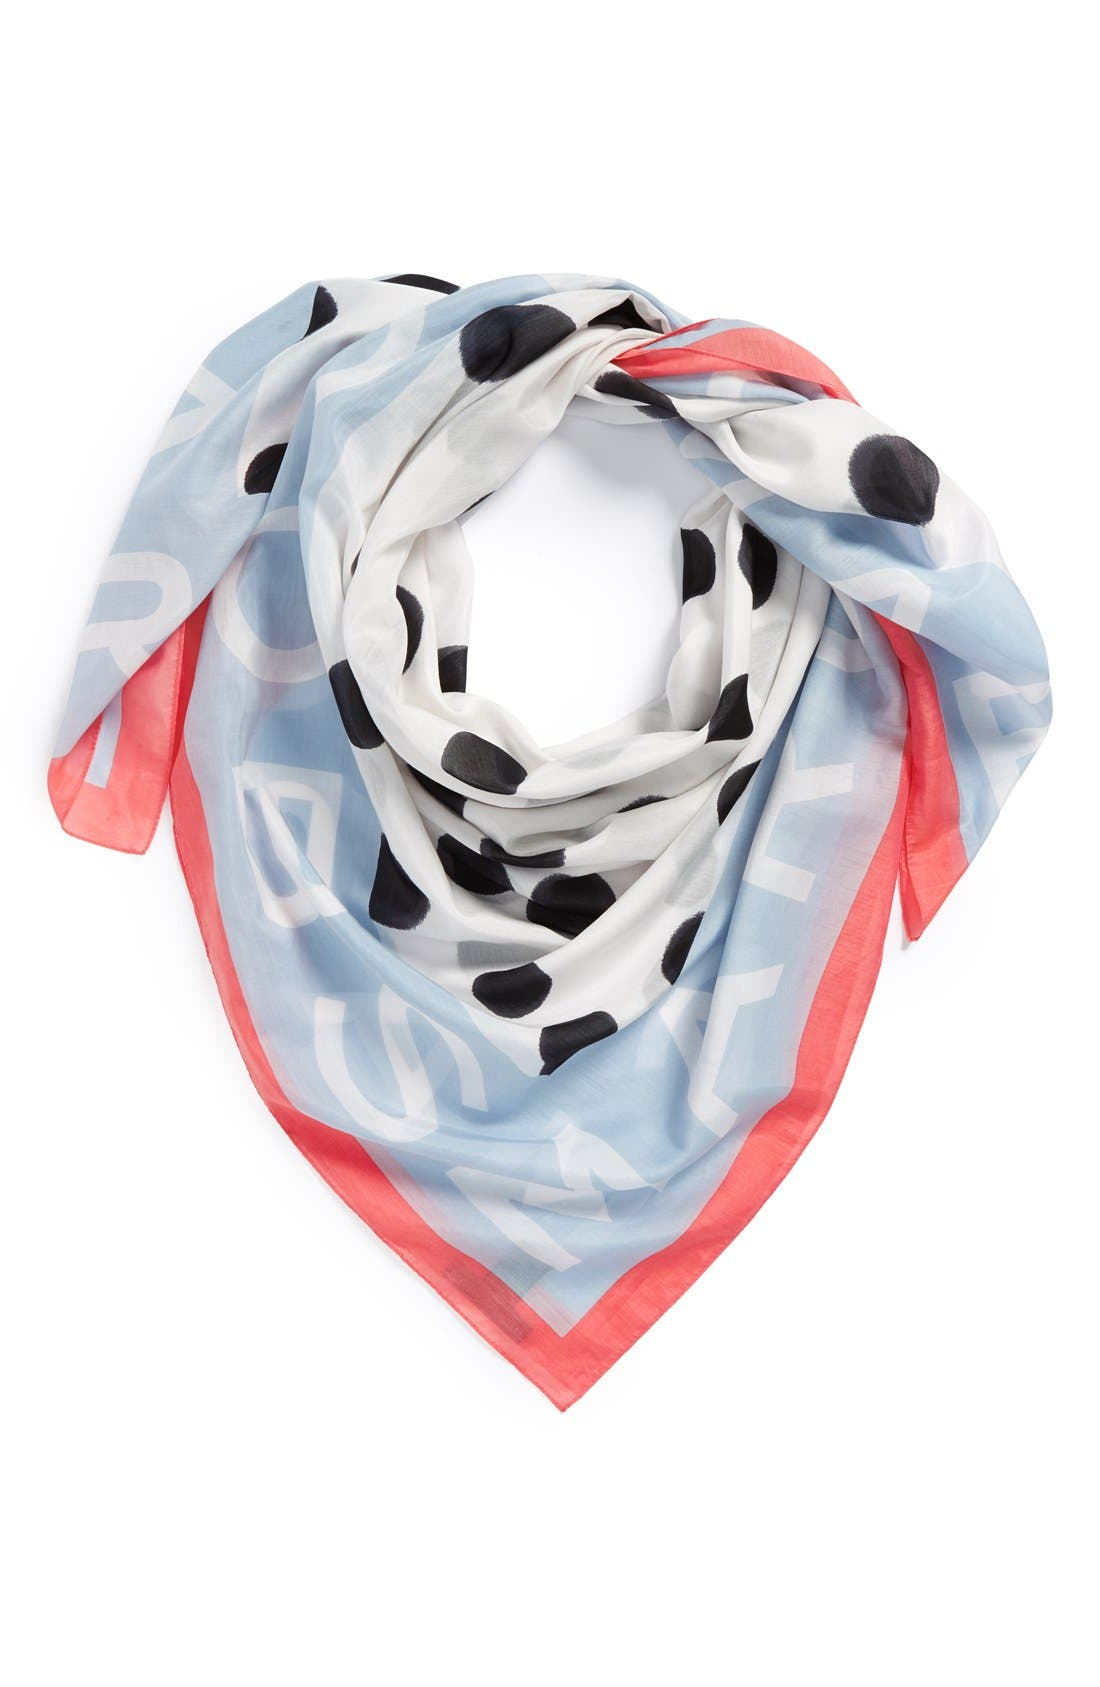 MARC JACOBS MARC BY MARC JACOBS 'Blurred Dot' Cotton & Silk Square Scarf, Main, color, 100